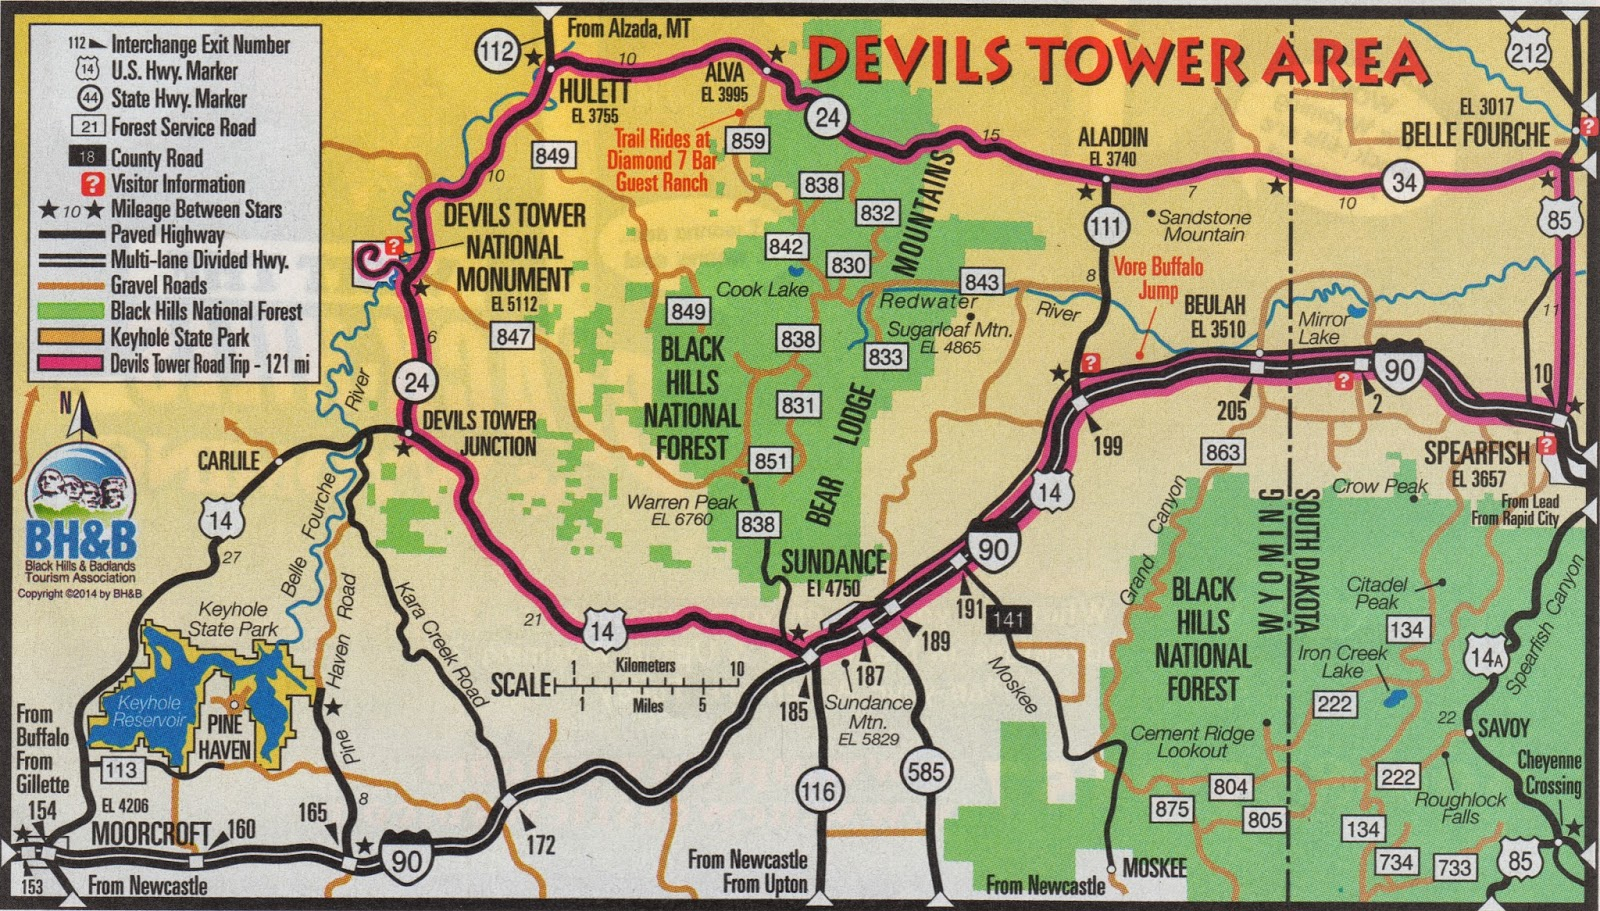 as you can see the trip to devils tower is like a big loop for our route it made more sense for us to travel through the